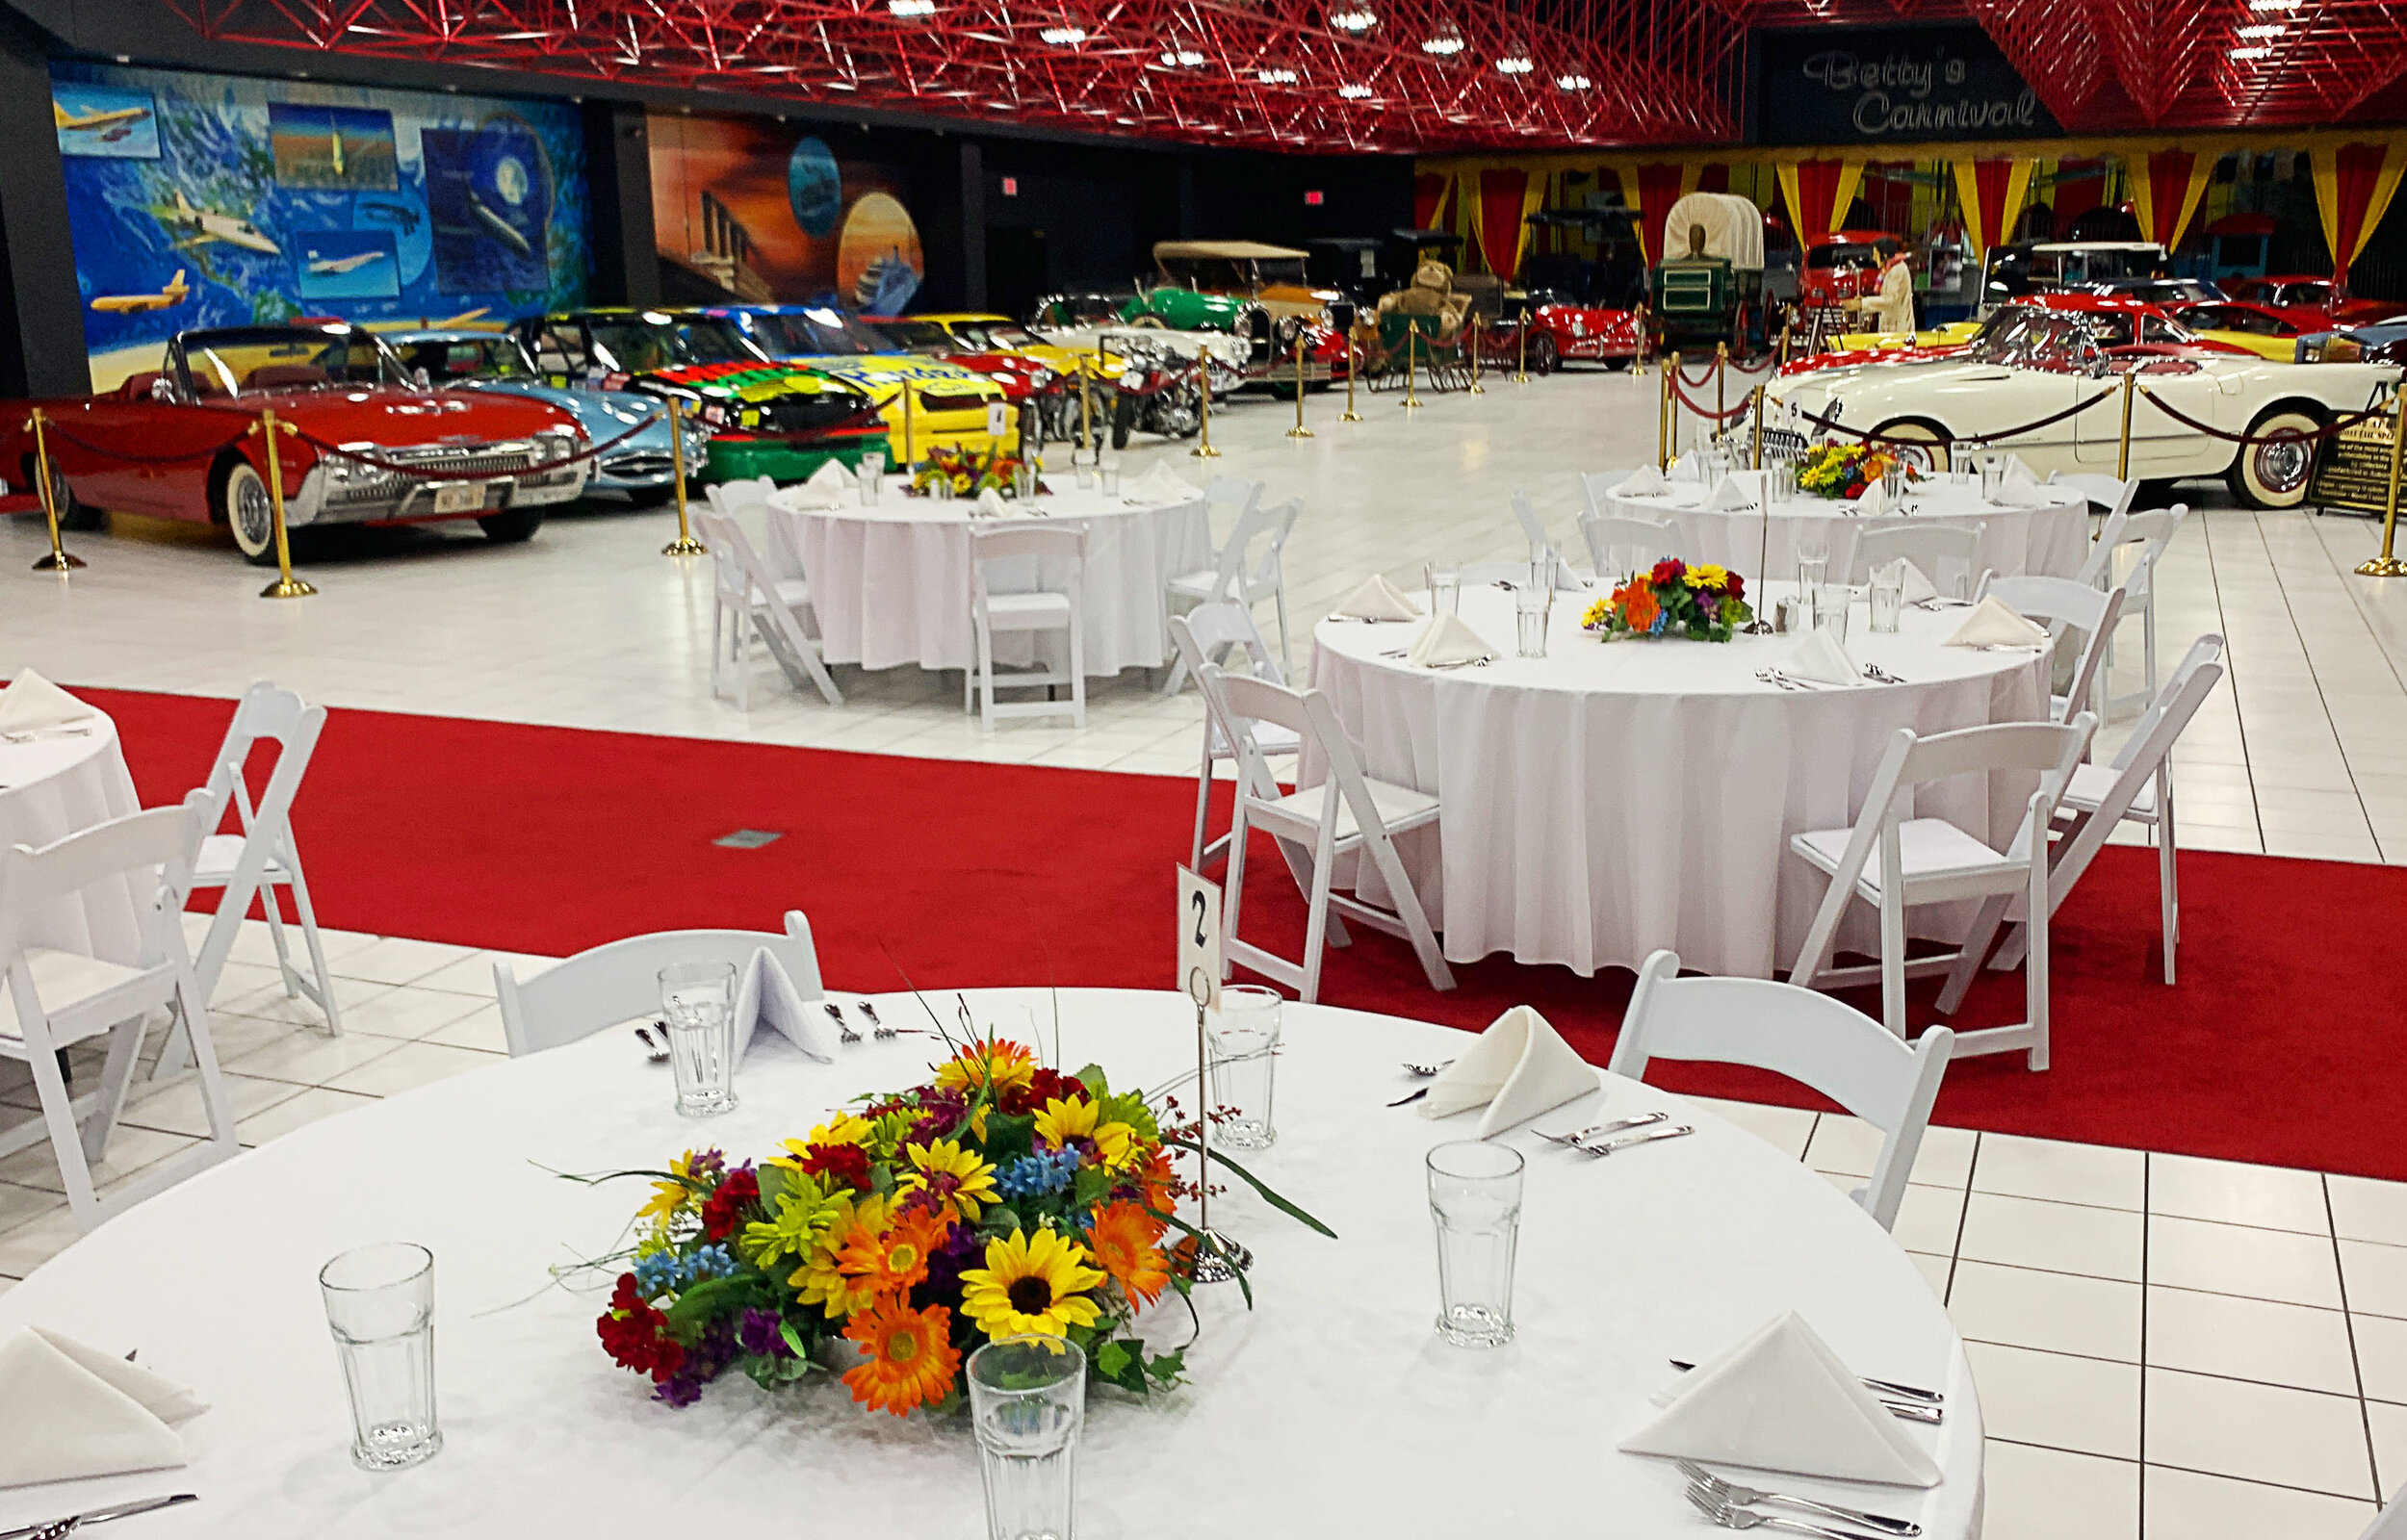 May 17, 2020Event Dinner - The 6th Annual Fresh Start Caring For Kids Jermaine Dye Celebrity Golf Classic will kick-off with a dinner party hosted at Rich Harvest Farms in their world-renowned car museum. This dinner party is for both golfers and non-golfers a like. The evening will feature live and silent auctions with prizes and various experience packages. CLICK HERE